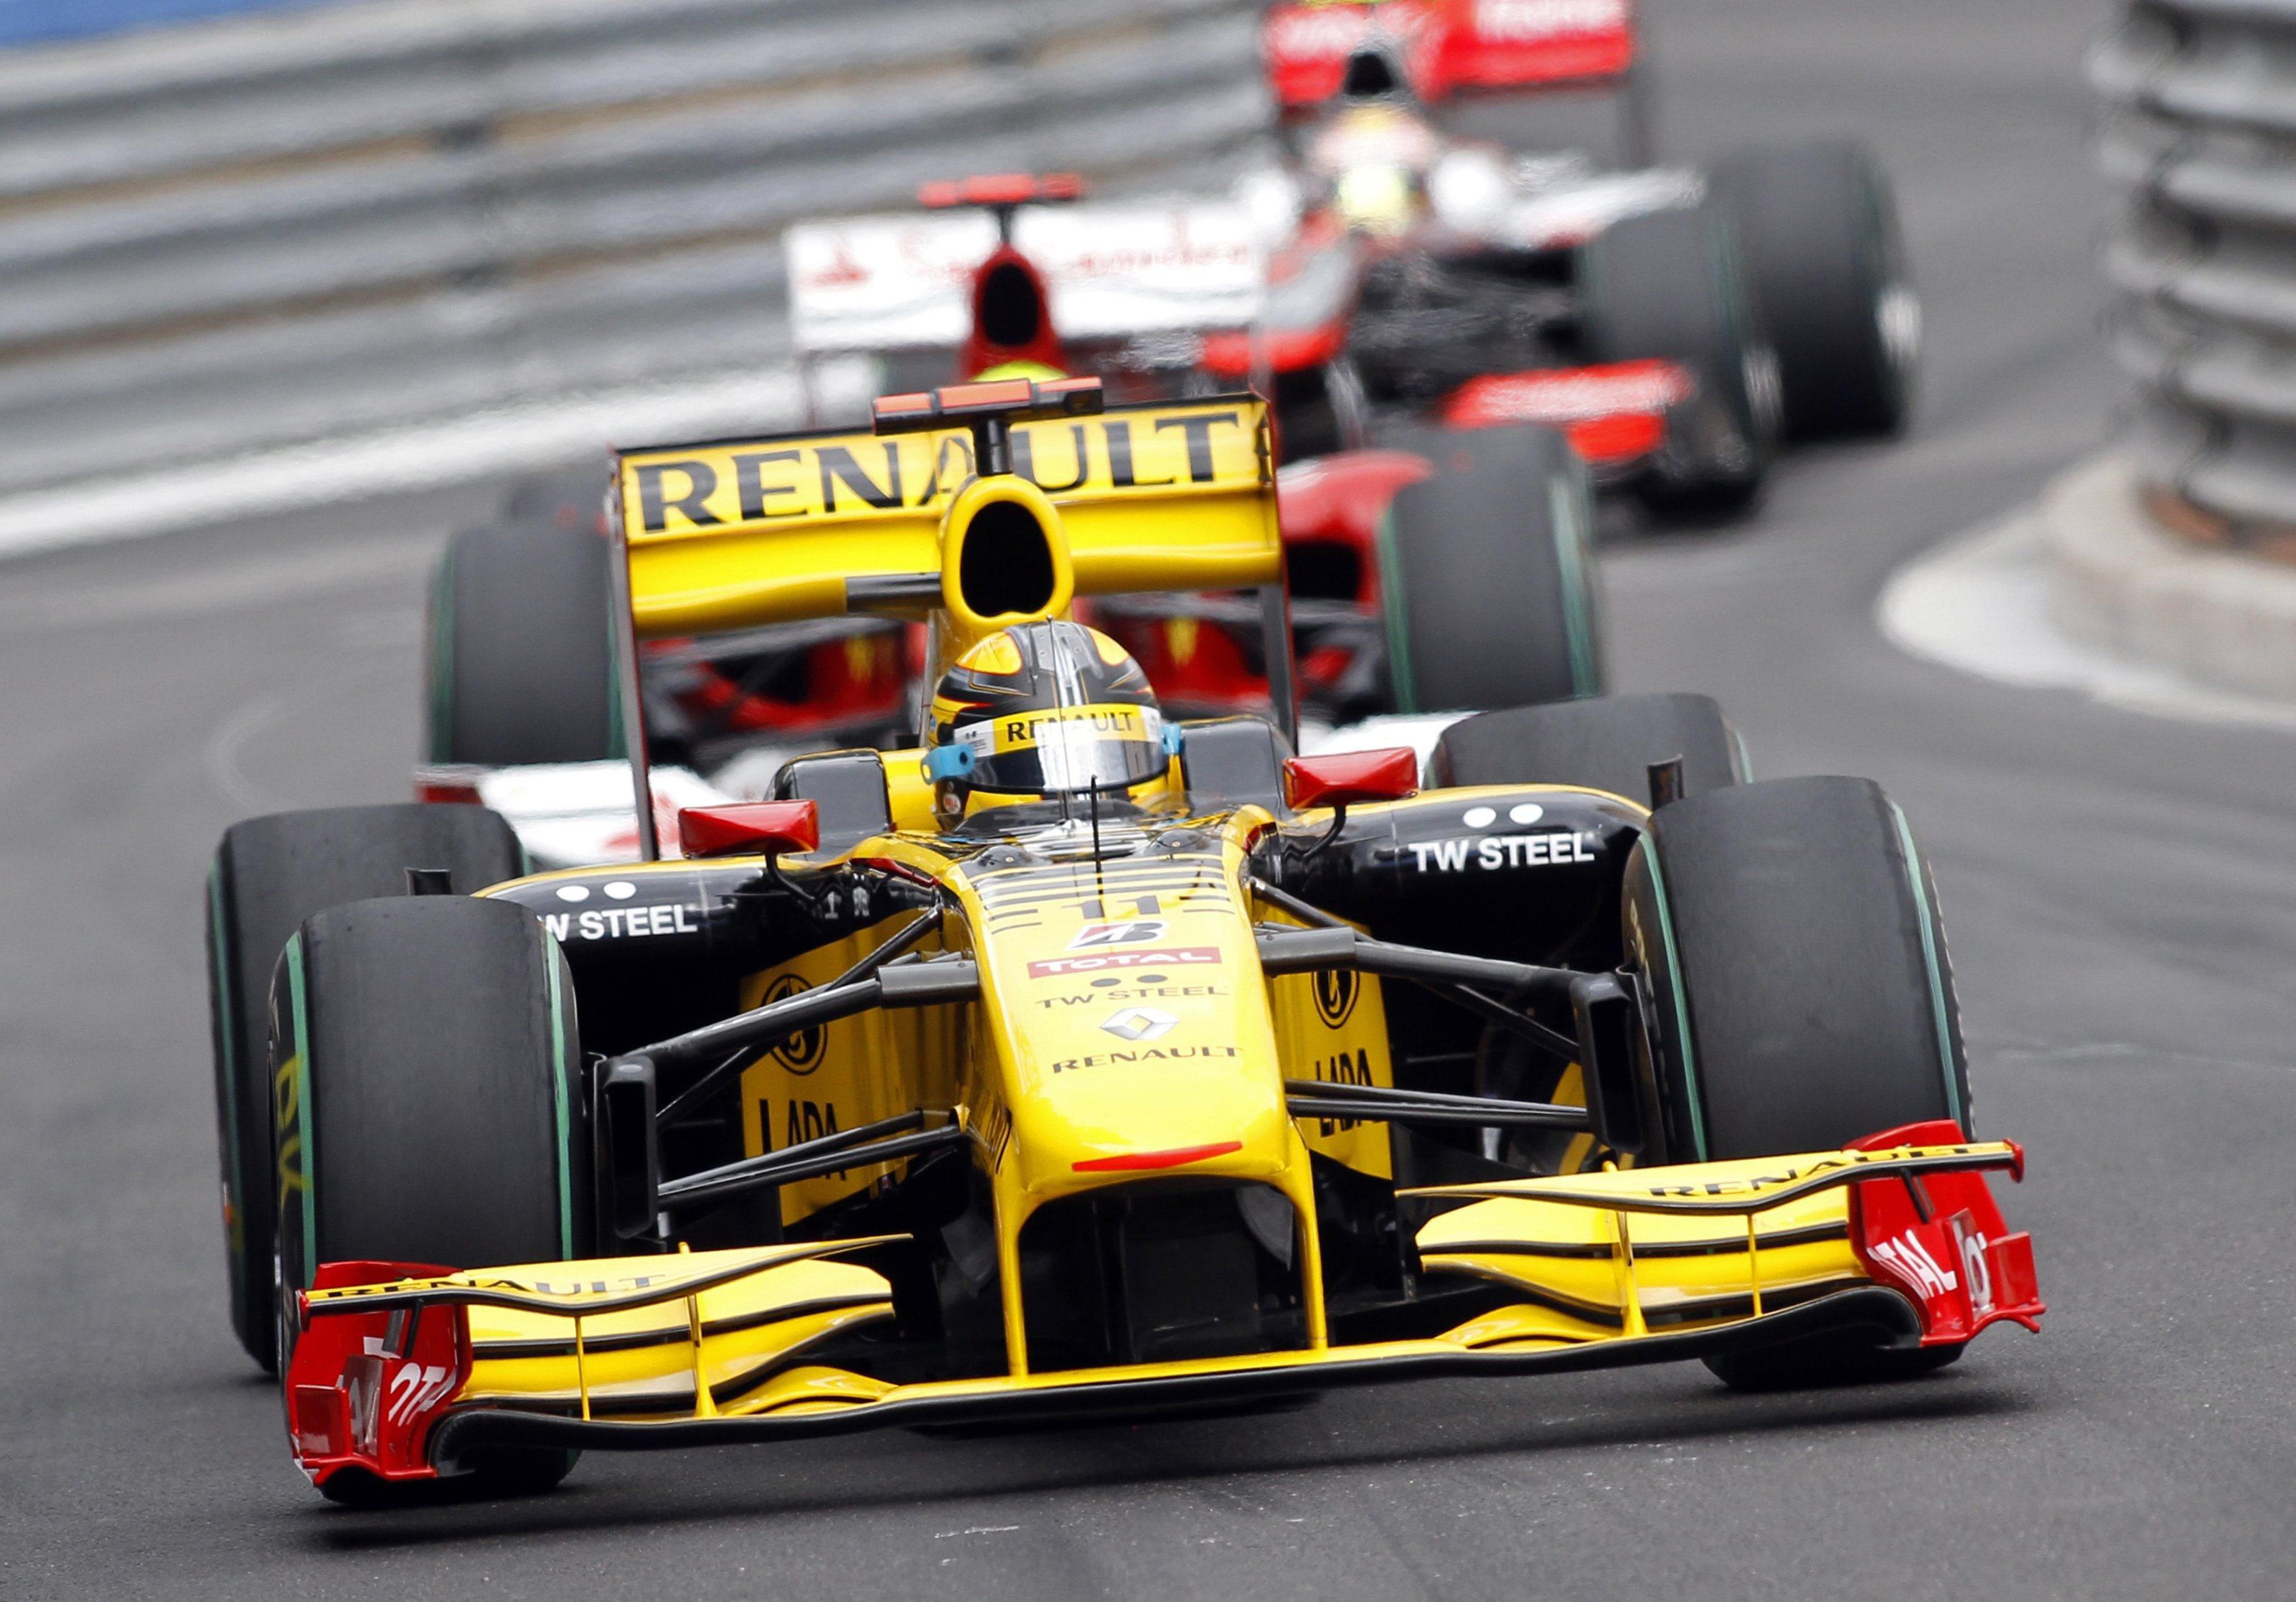 Kubica in action for Renault during the Monaco GP in May 2010